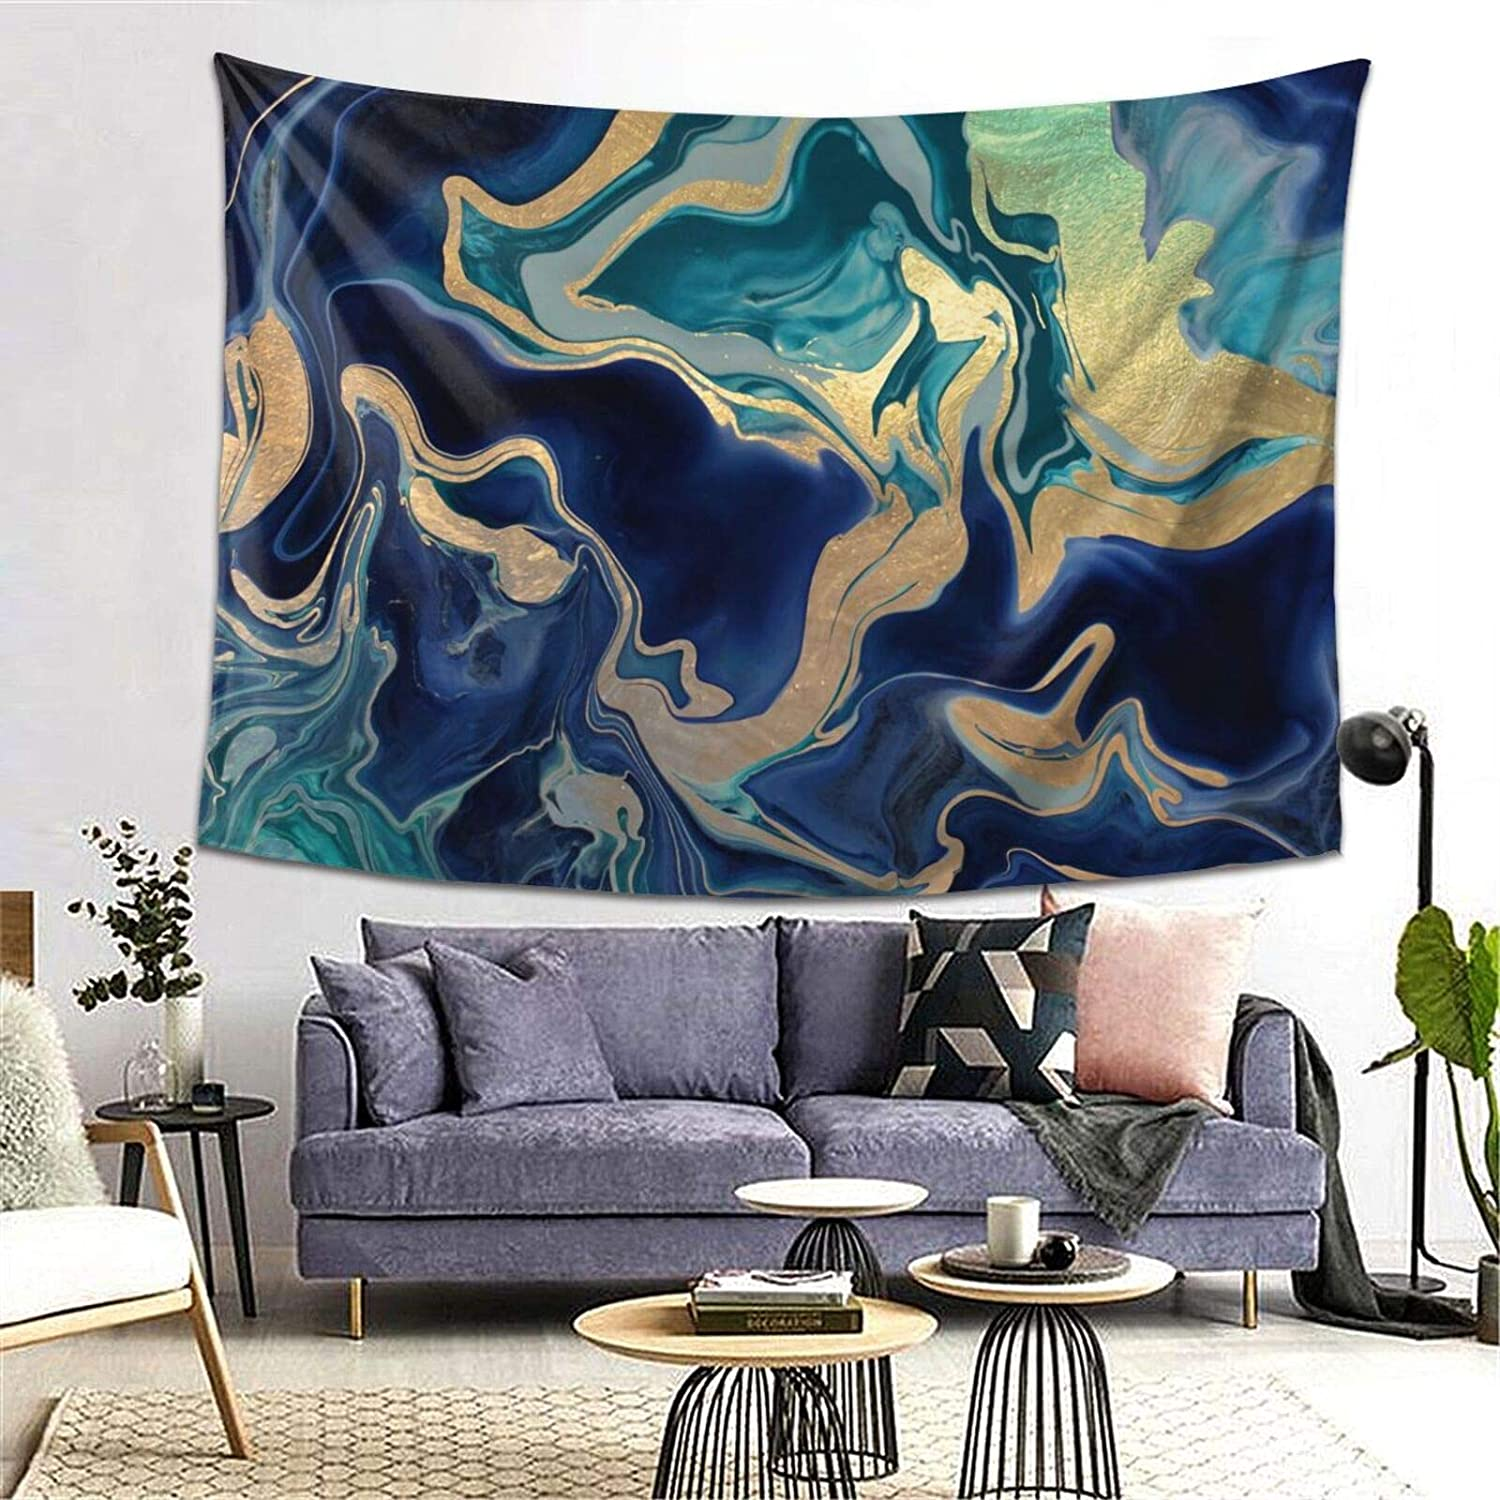 PRESANEW Tapestry Wall Hanging Gold Turquoise Green Navy Blue Wave Marblewall Tapestry with Art Nature Home Decorations for Living Room Bedroom Dorm Decor in 5 Size Options